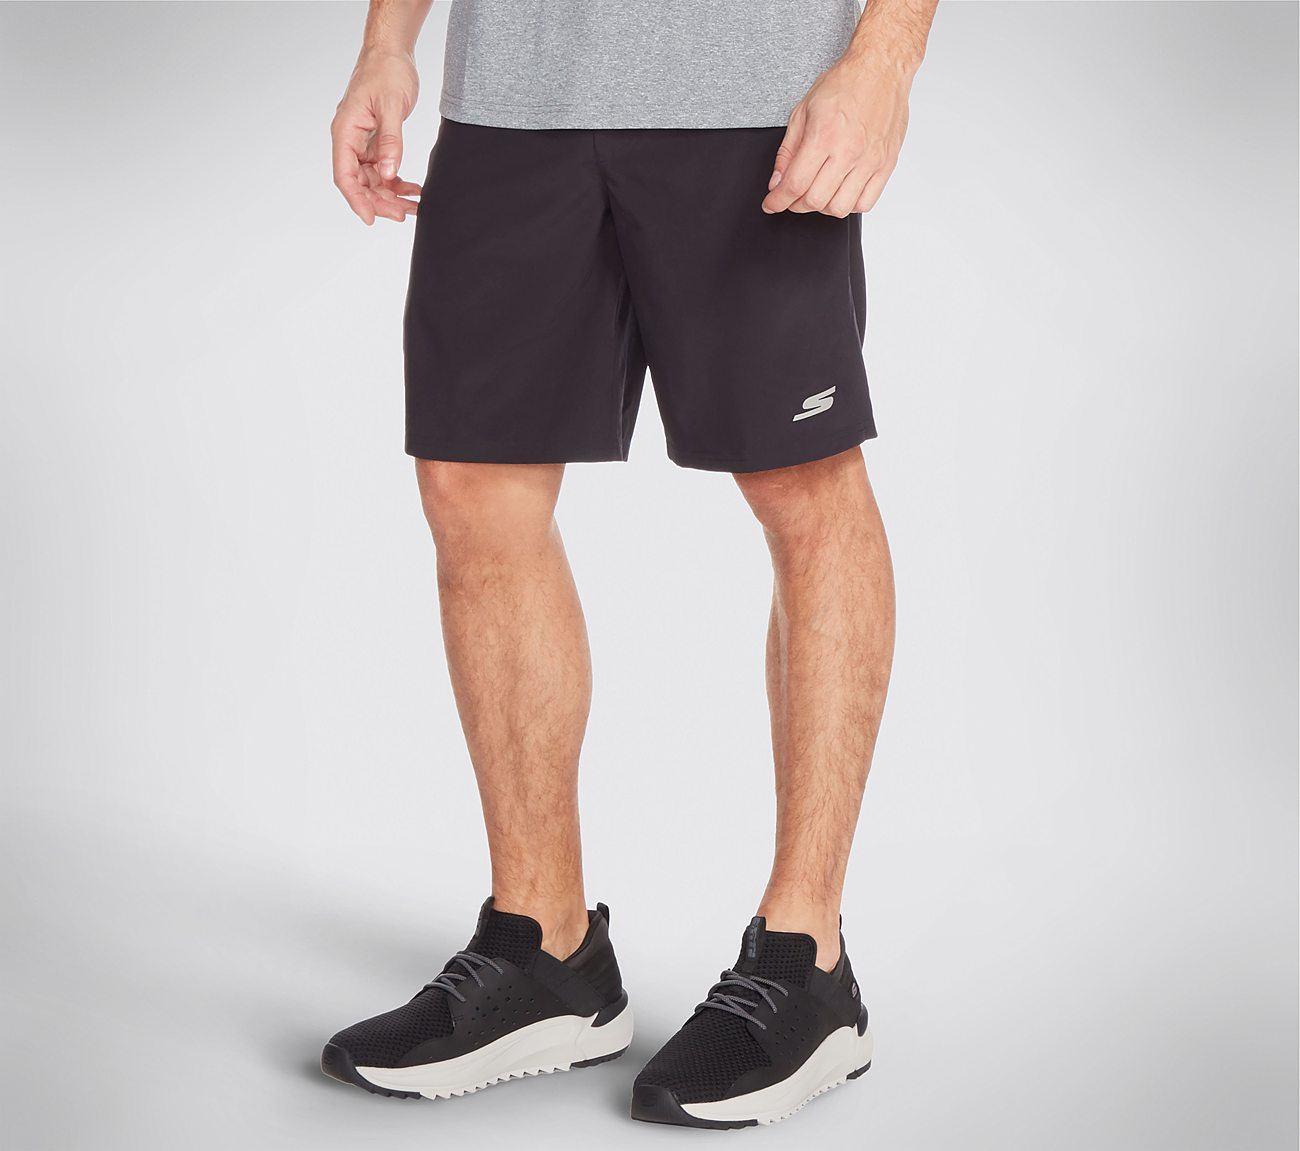 Skechers Apparel Movement 9 Inch Short